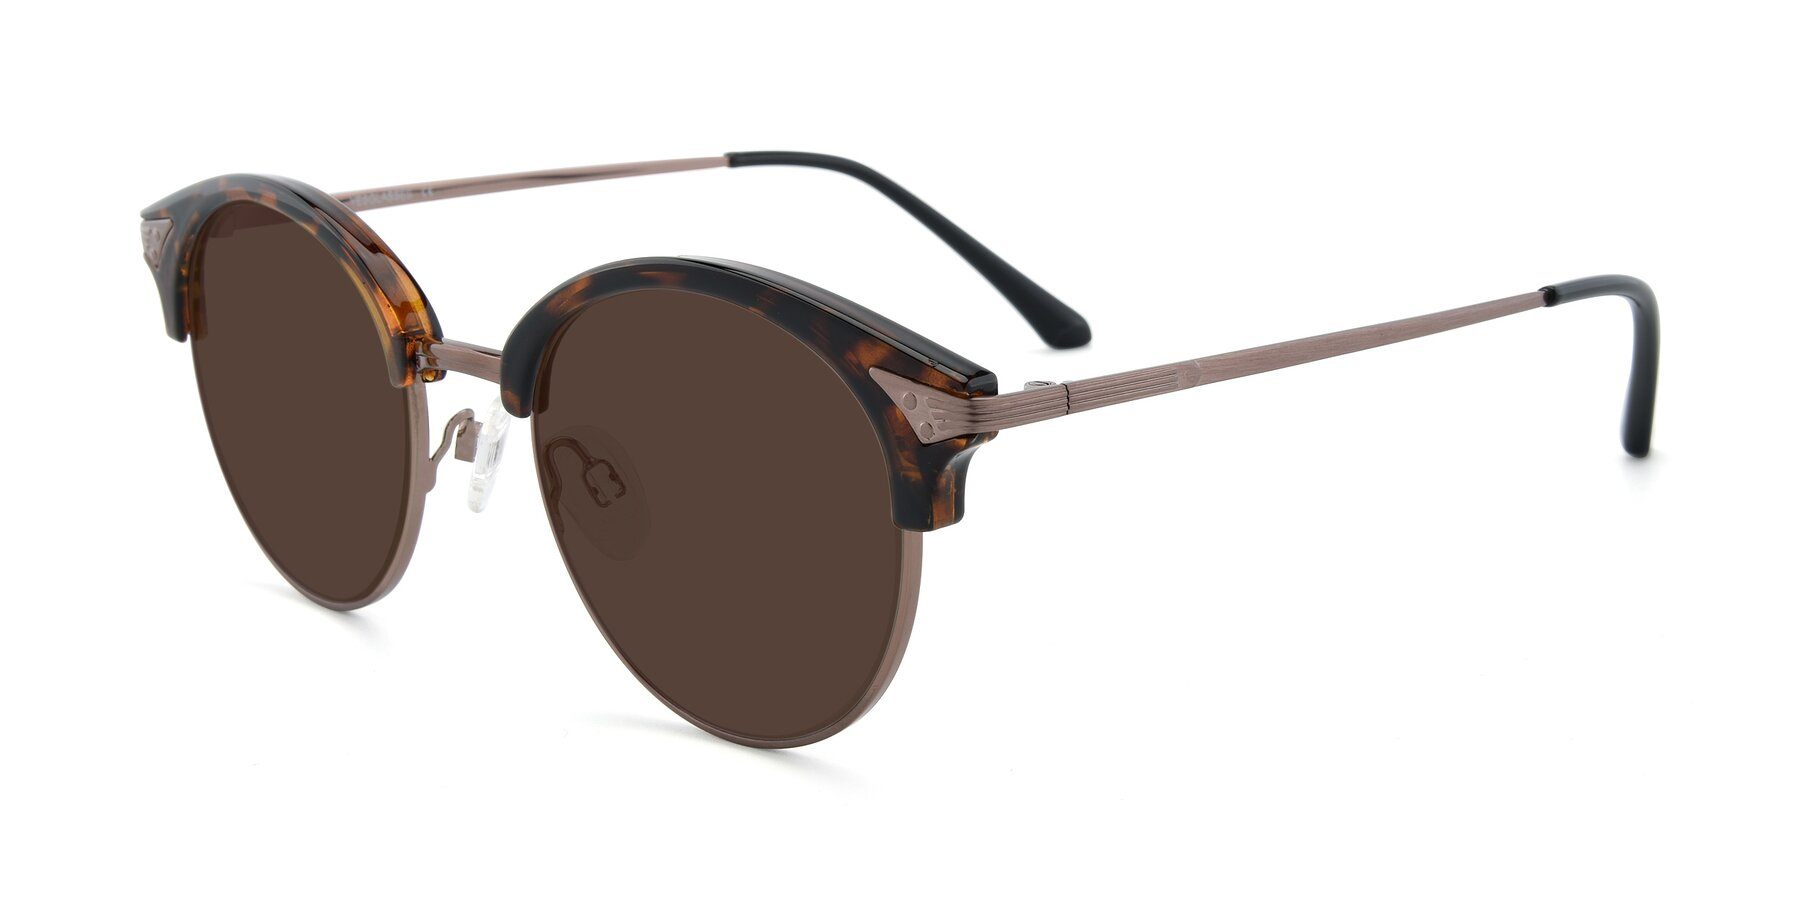 Angle of Hermione in Tortoise-Brown with Brown Tinted Lenses